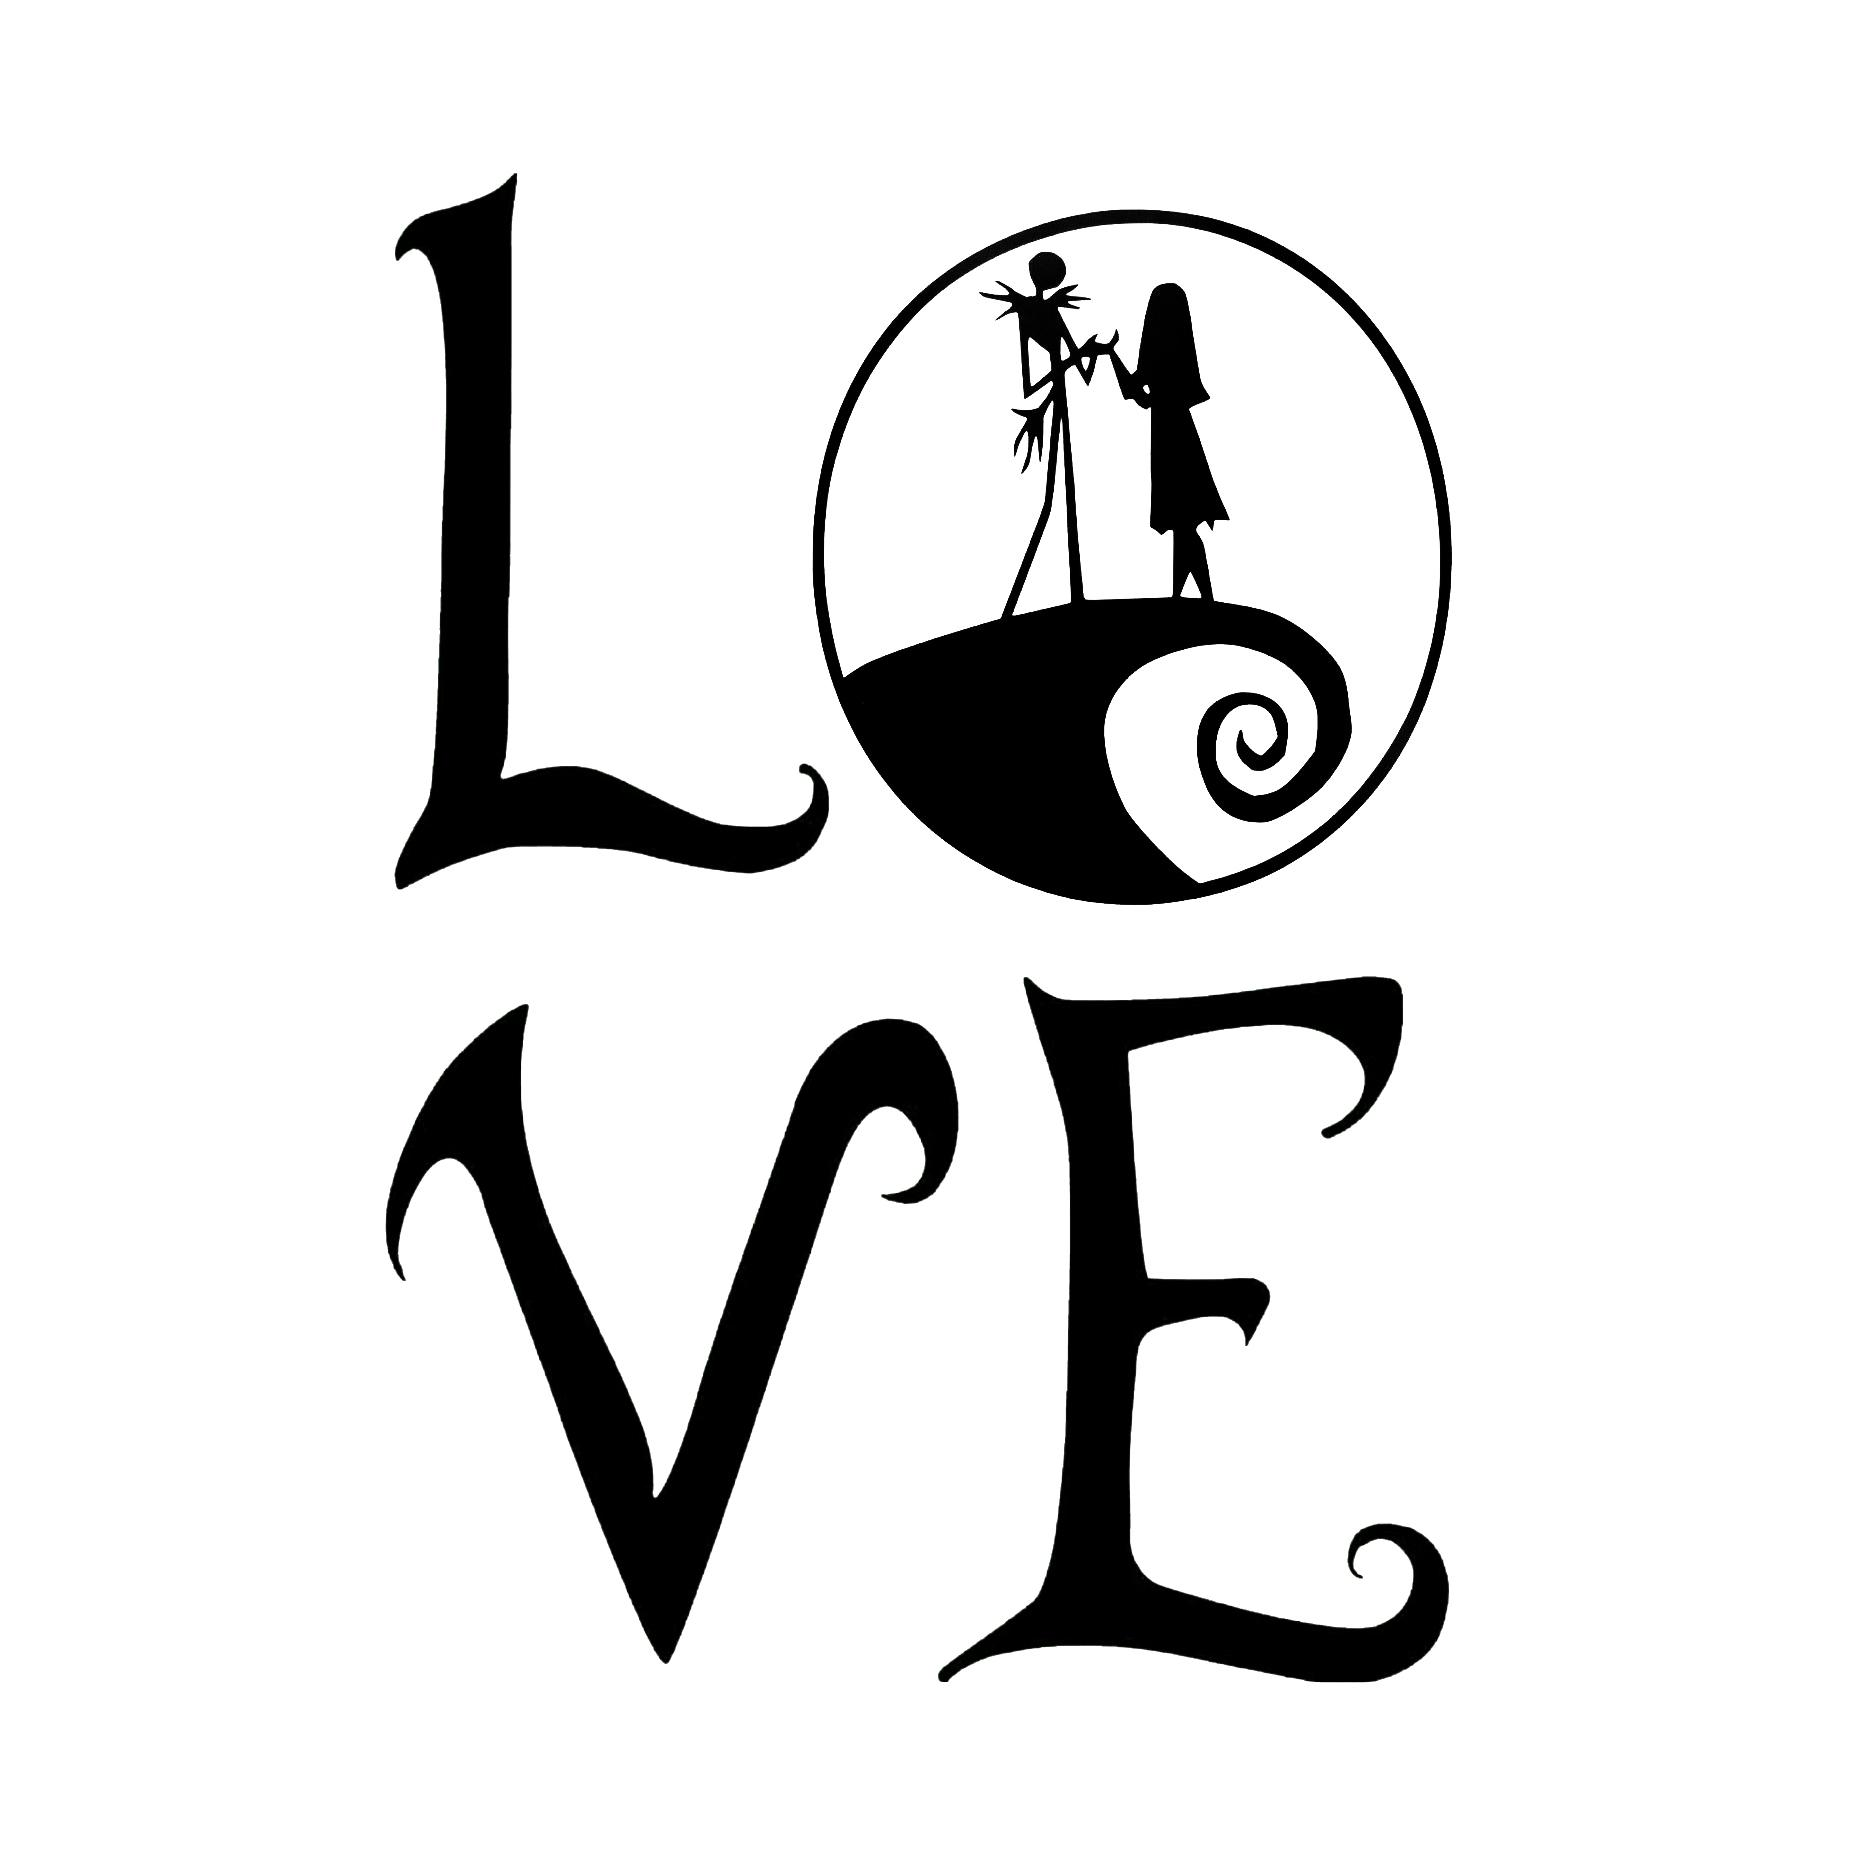 2019 nightmare before christmas love wall decal home cute warm and romantic vinyl car wrap from xymy777 2 92 dhgate com